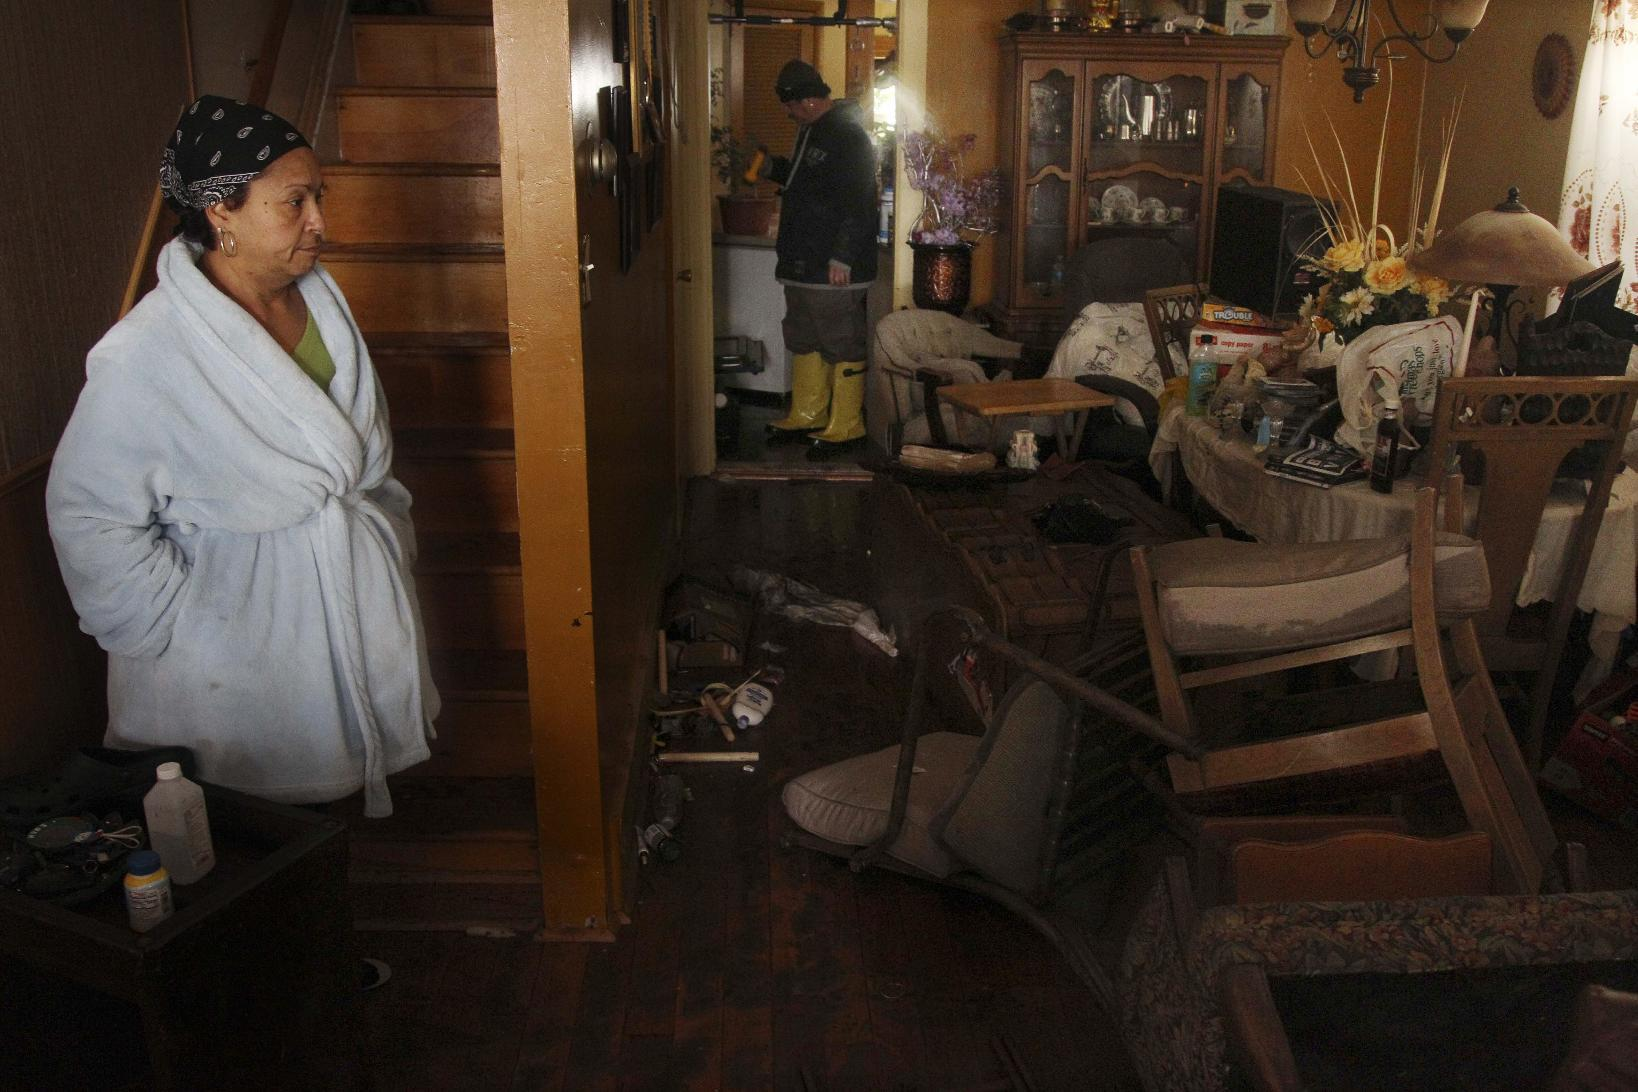 Virgen Perez, left, and her husband Nelson Rodriguez, center, look around their home which was flooded by Storm Sandy in Atlantic City, N.J. on Tuesday, Oct. 30, 2012. Their family stayed on the second floor of their home during the storm. (AP Photo/Seth Wenig)